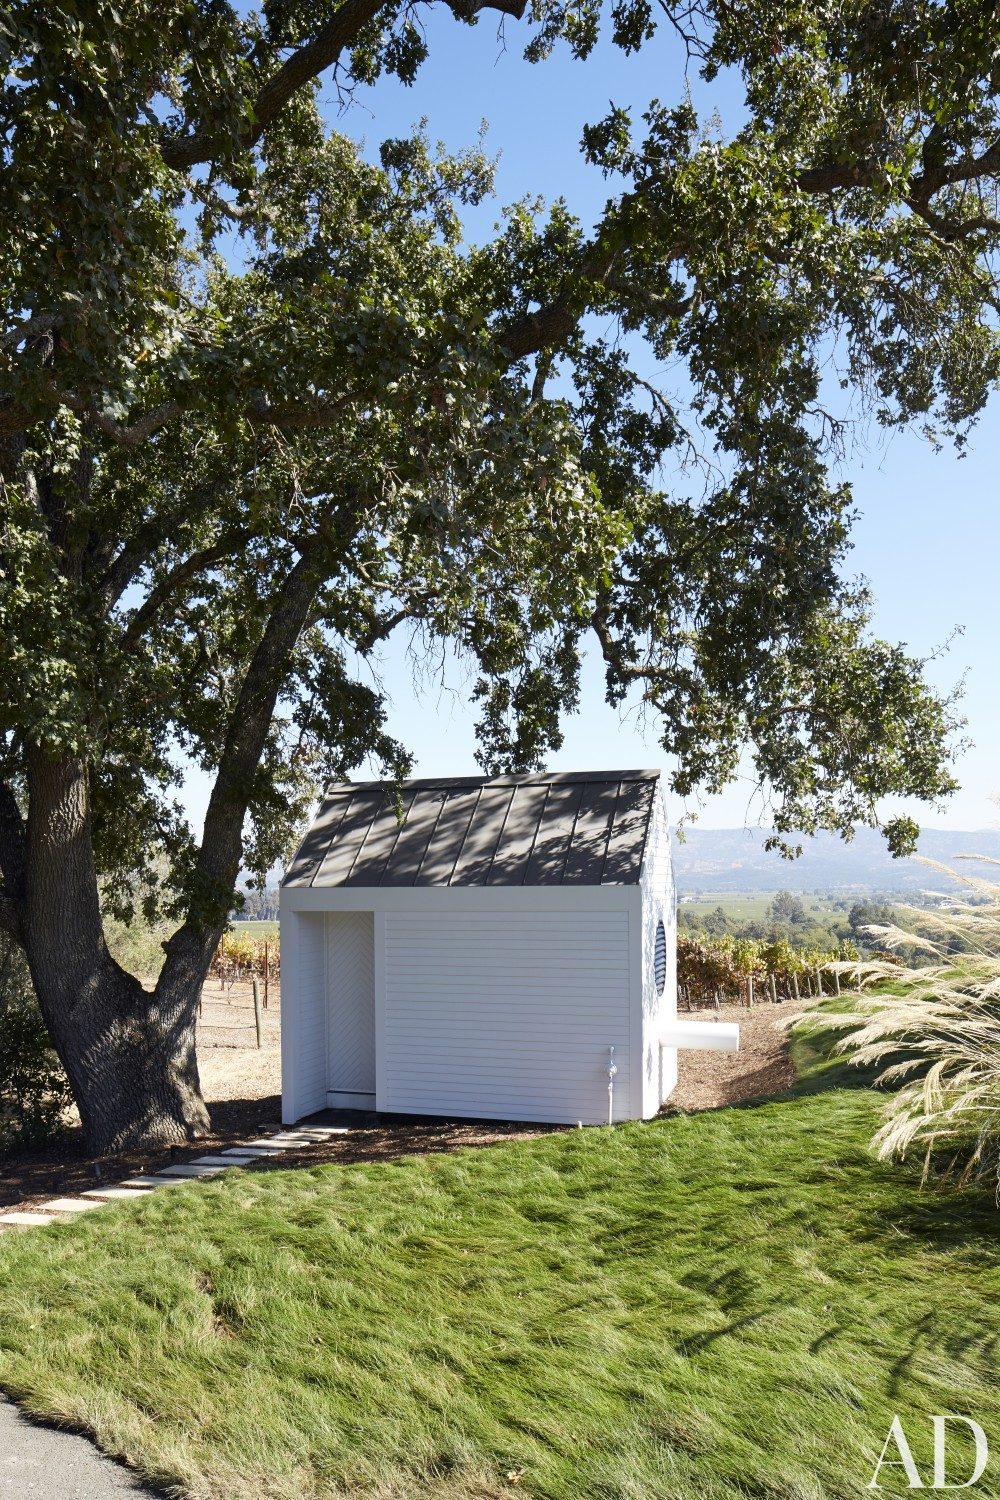 Contemporary Outdoor Space by Jeff Atlas and Jacobsen Architecture in Napa Valley, CA